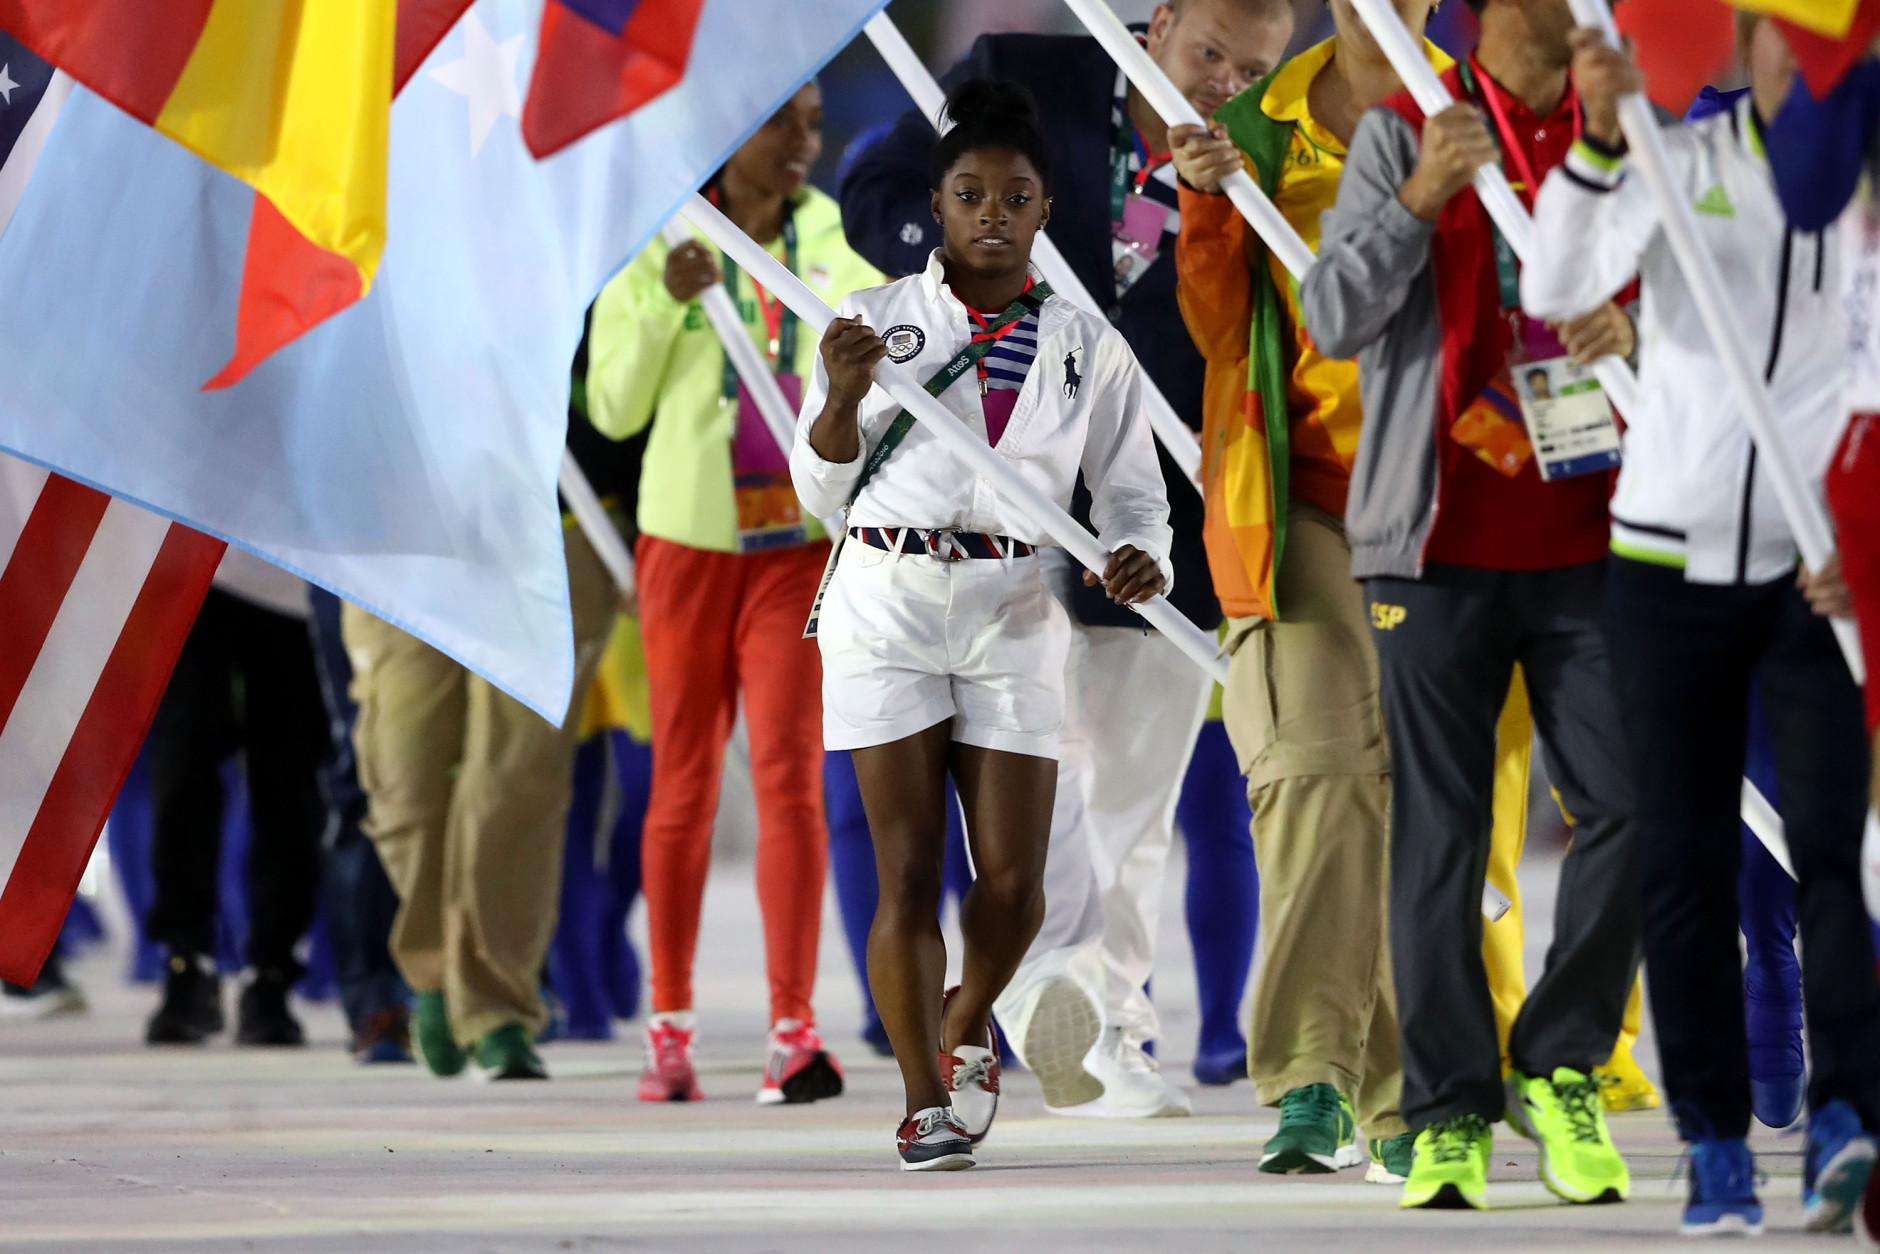 """RIO DE JANEIRO, BRAZIL - AUGUST 21:  Flag bearer Simone Biles of United States walks during the """"Heroes of the Games"""" segment during the Closing Ceremony on Day 16 of the Rio 2016 Olympic Games at Maracana Stadium on August 21, 2016 in Rio de Janeiro, Brazil.  (Photo by Ezra Shaw/Getty Images)"""